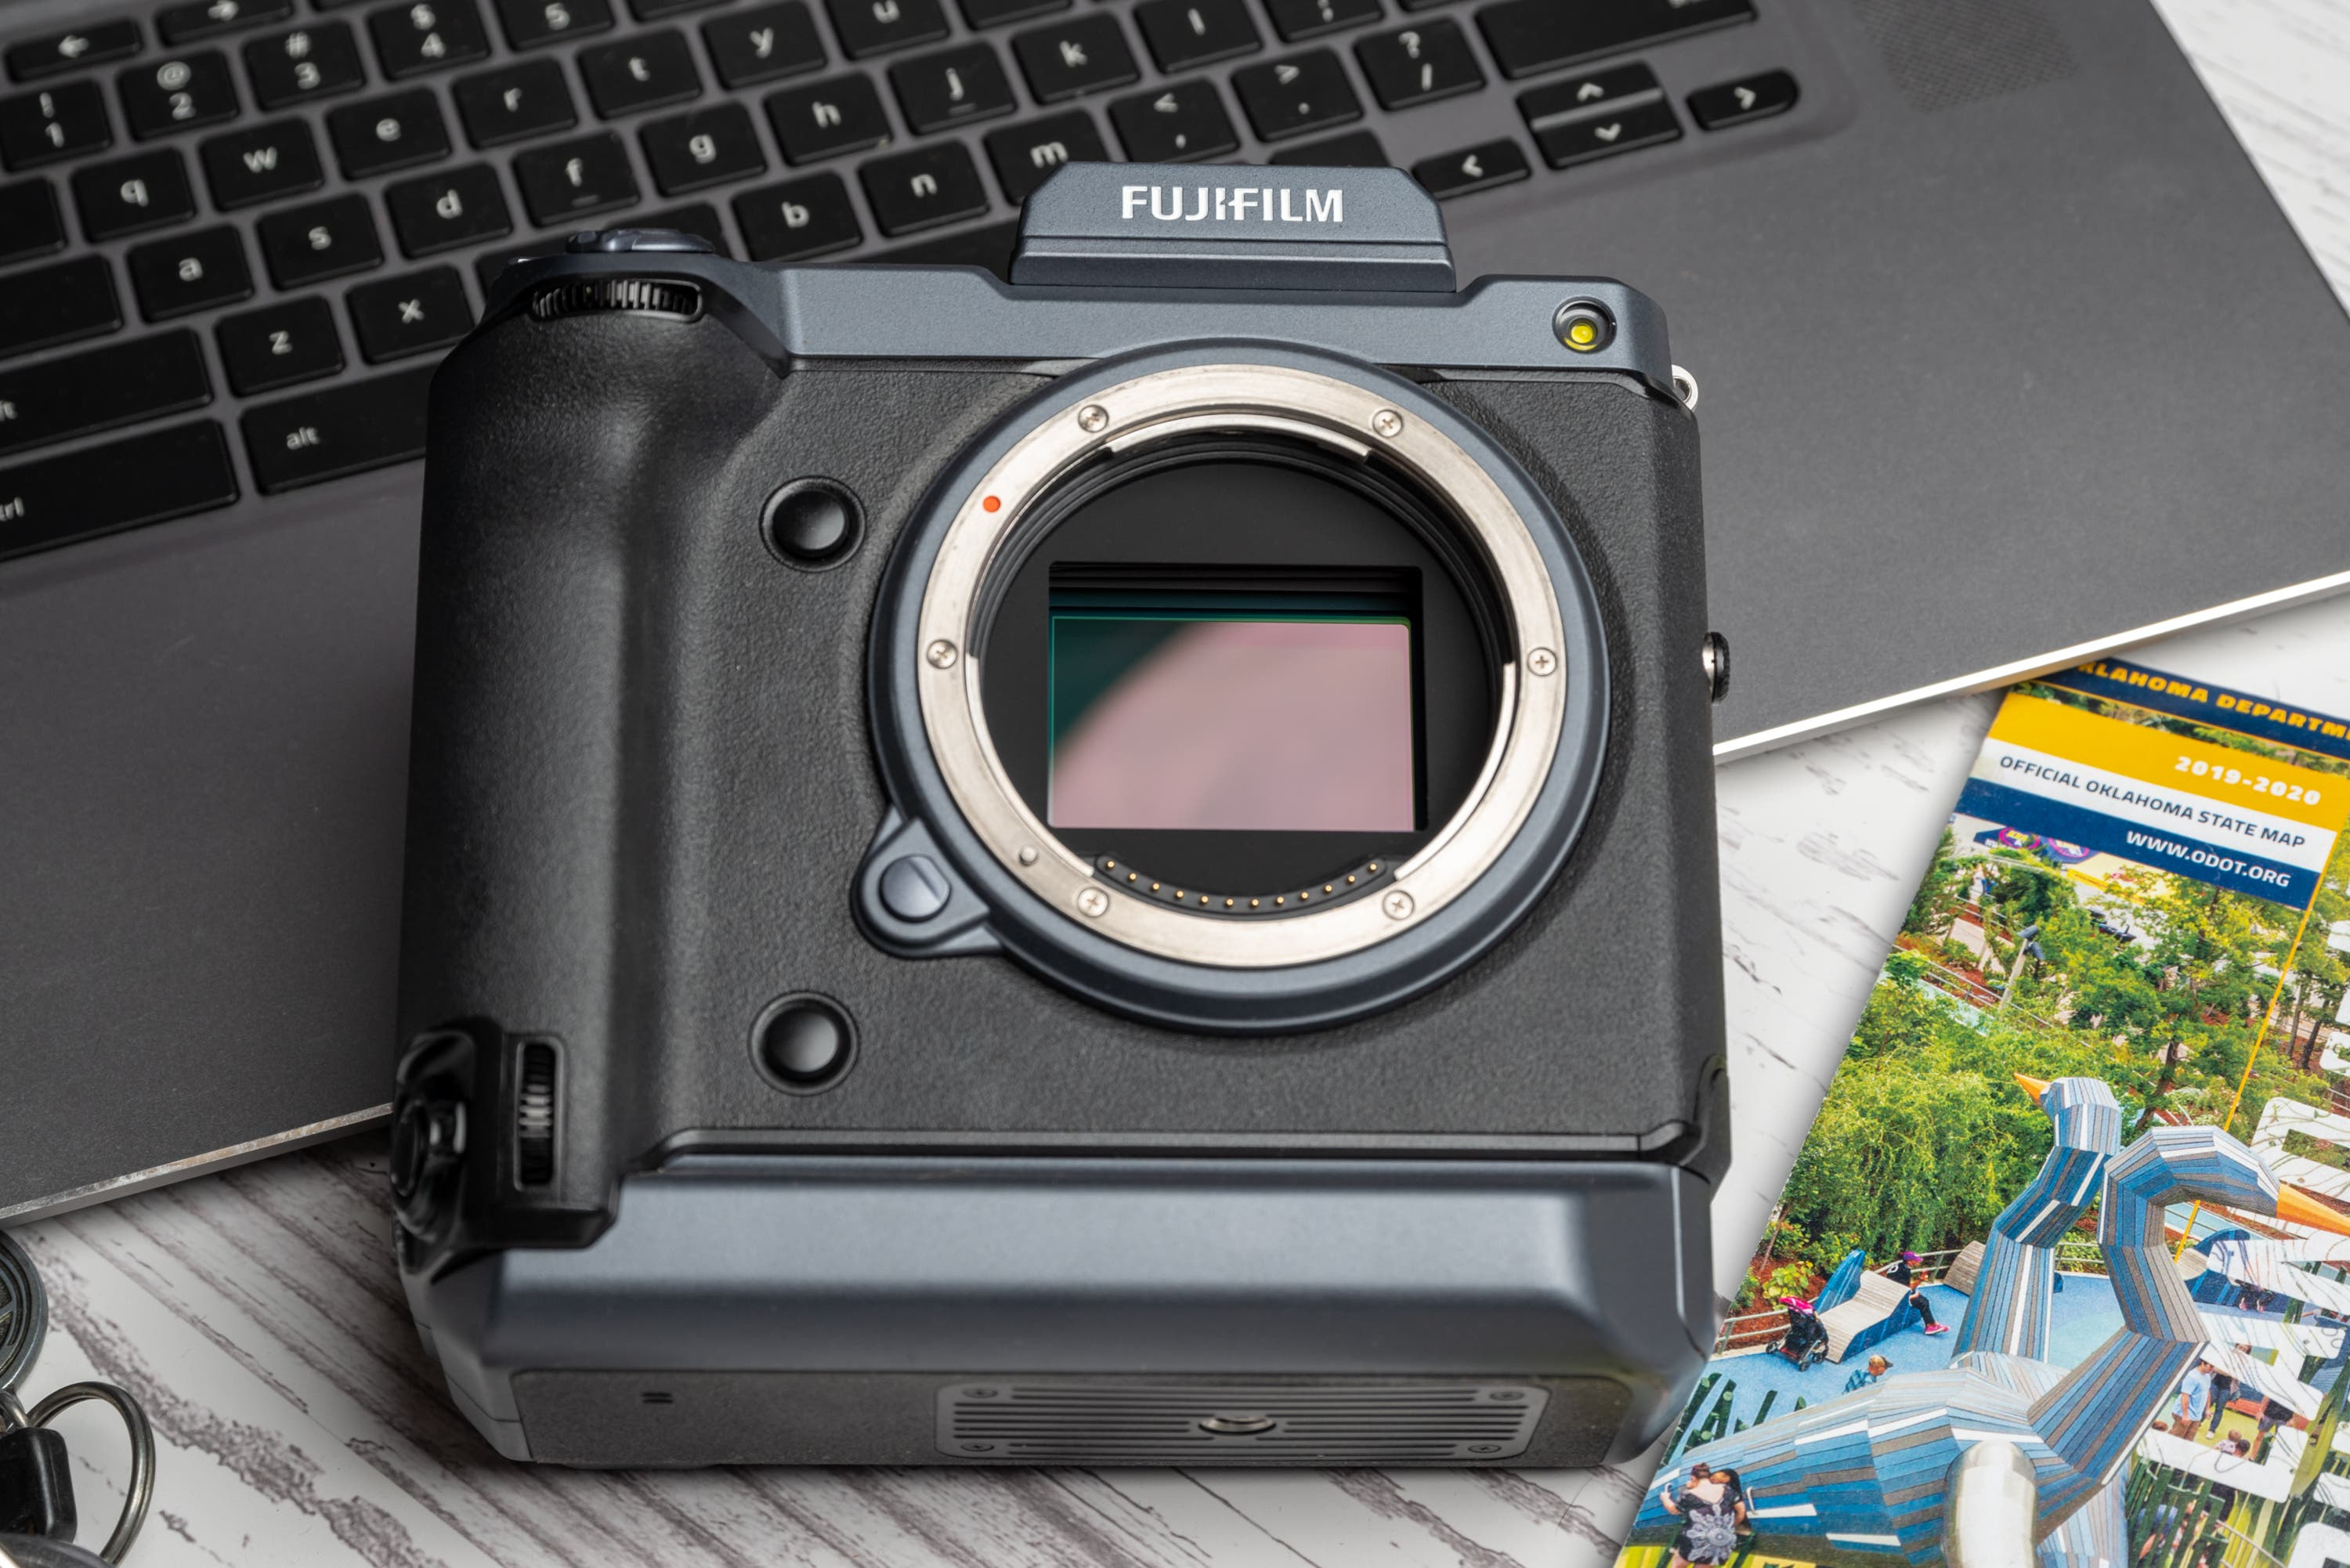 Review: Fujifilm GFX 100 (A Revolution in High Megapixel Imaging)